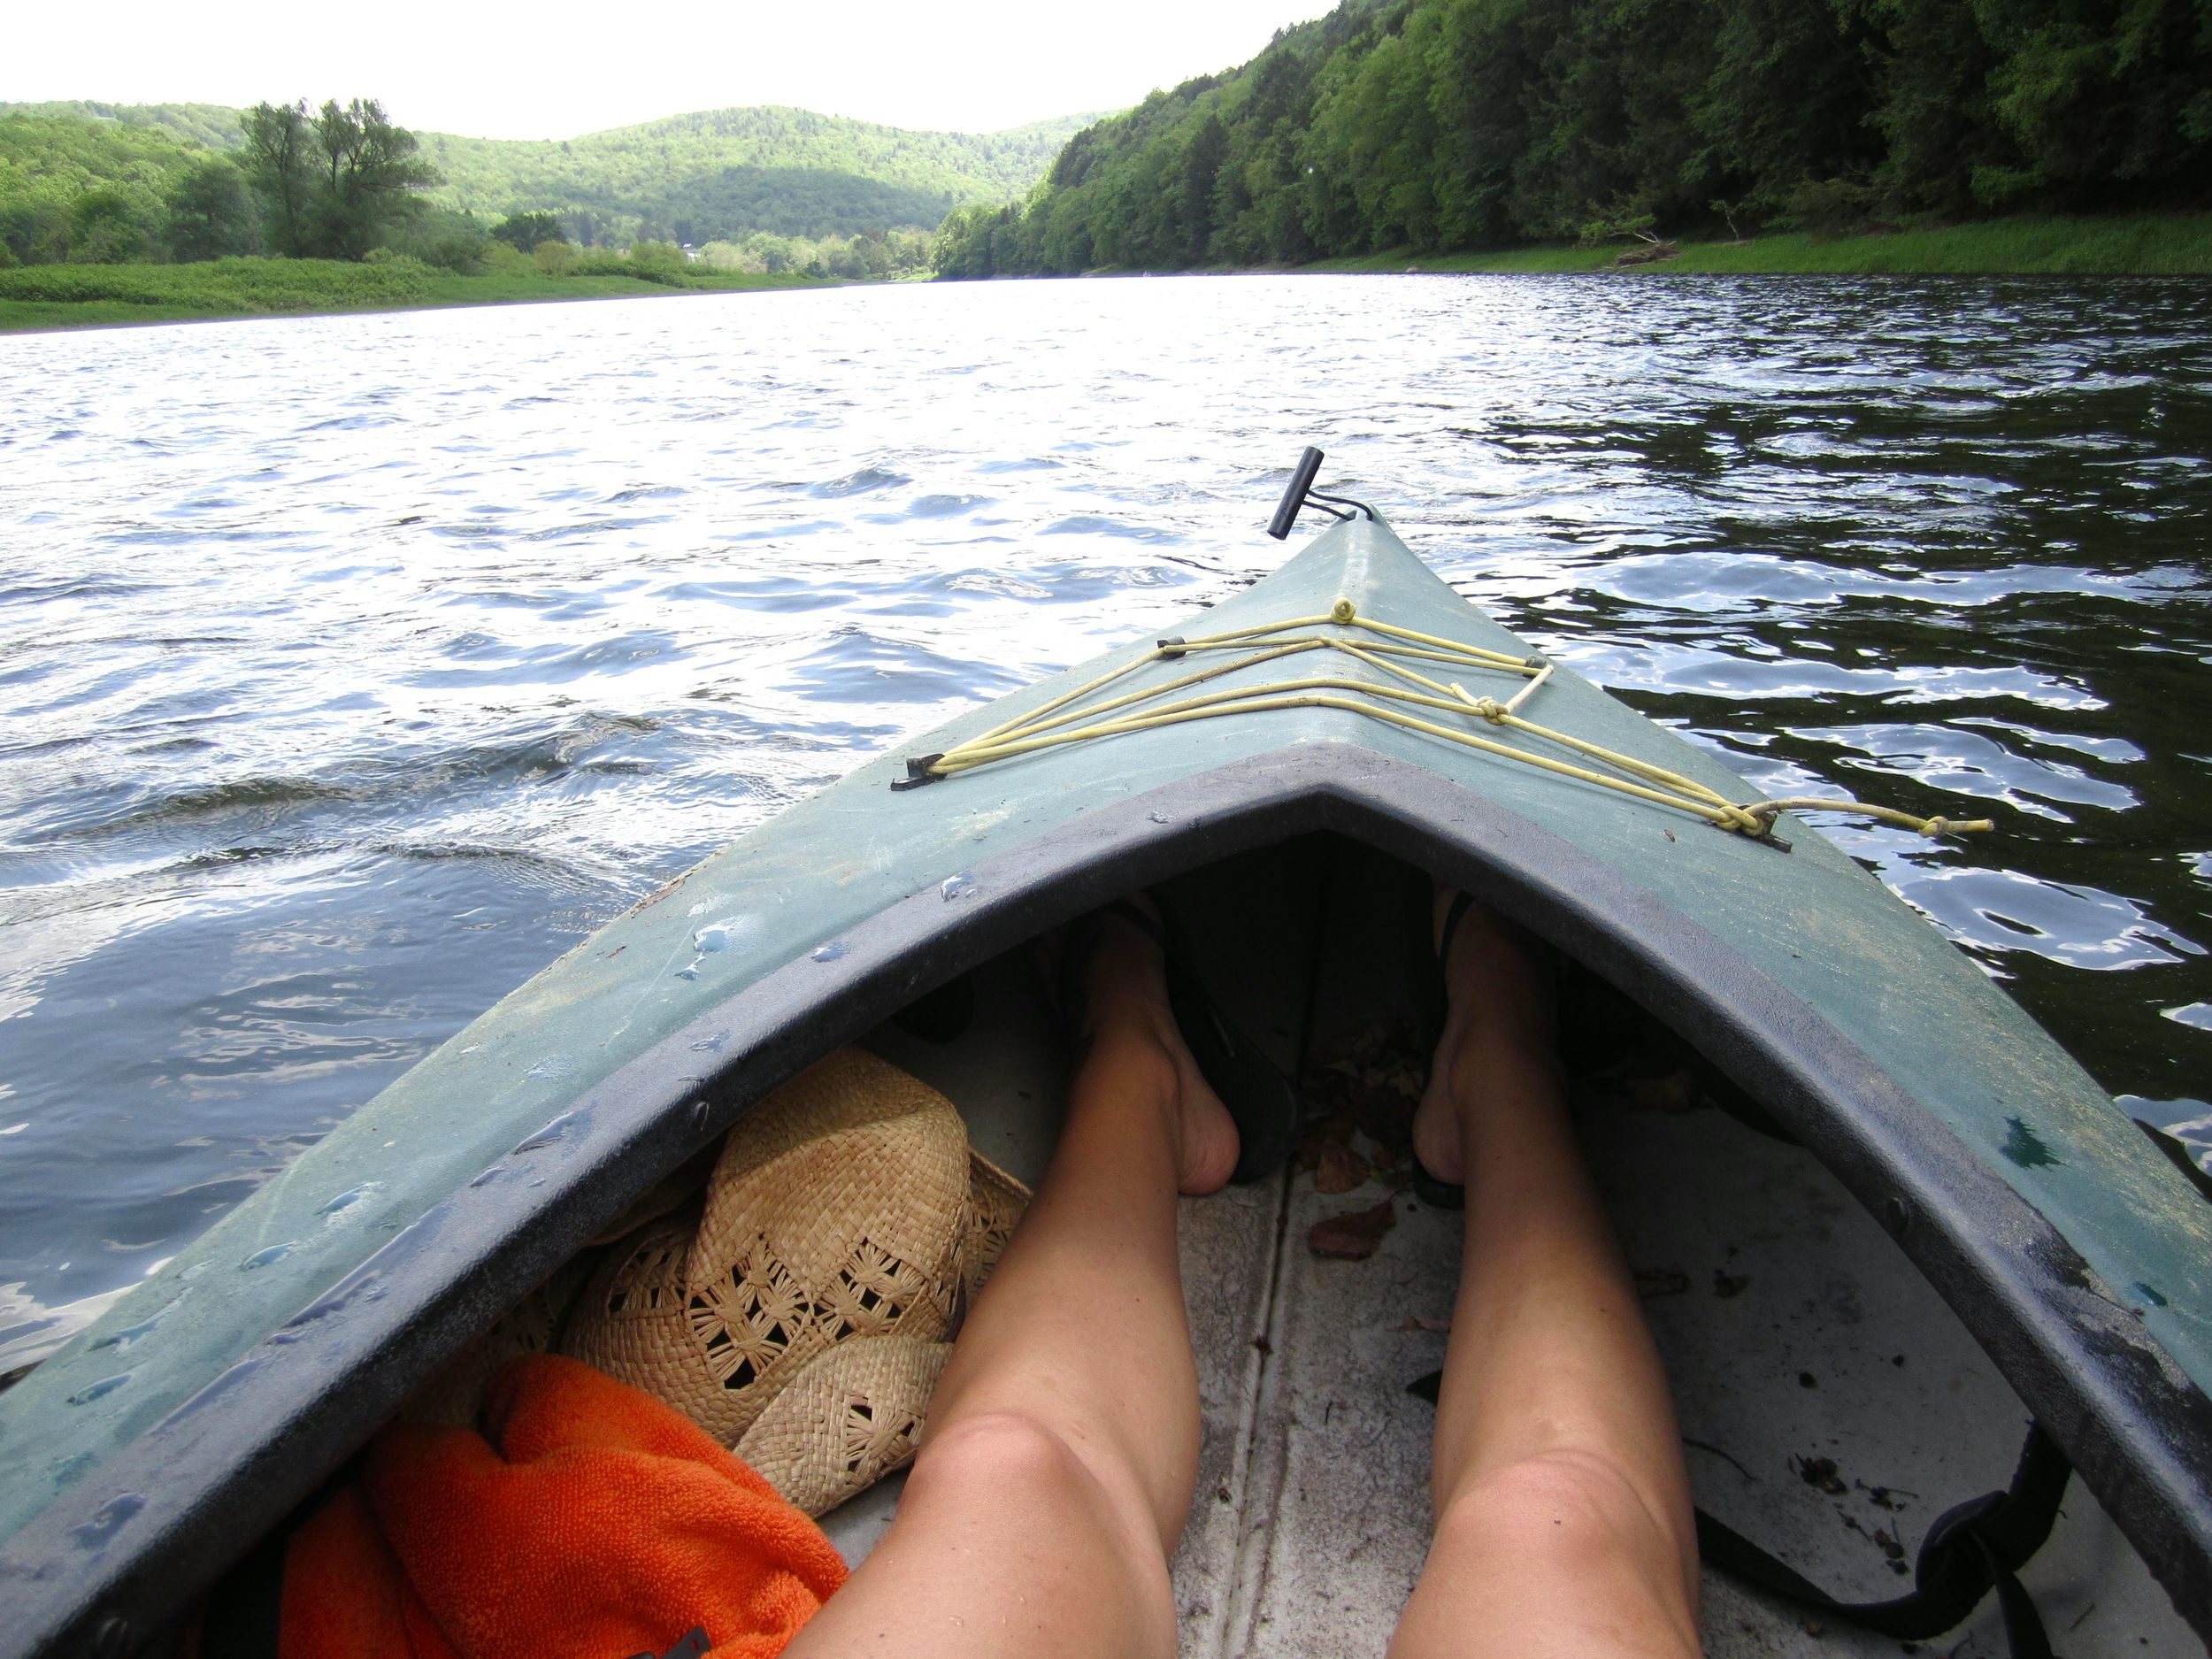 Outdoor camping and canoeing on the Delaware River - Bethel, NY.